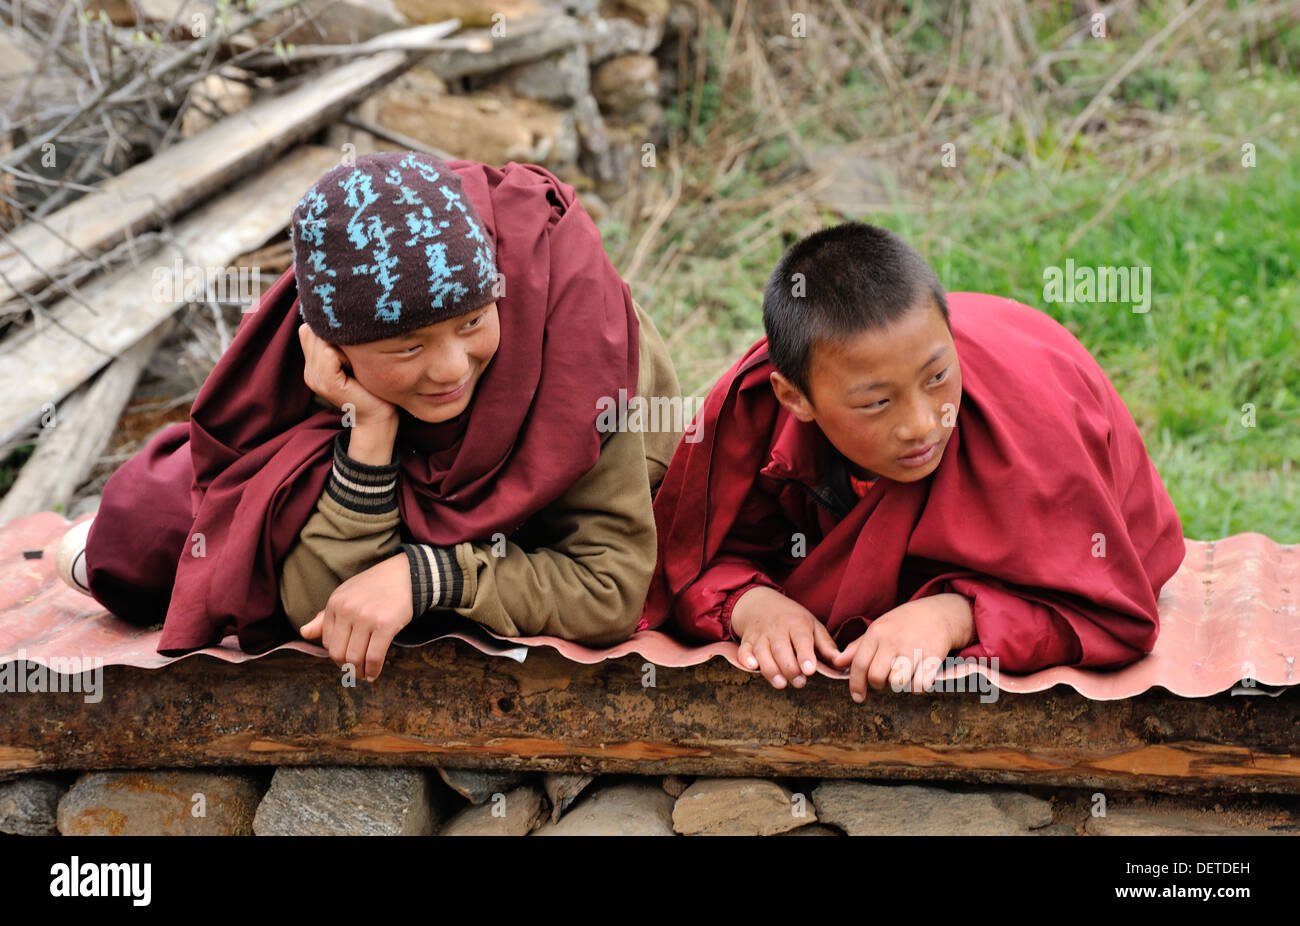 Young monks watching dancers at Domkhar Tsechu festival held in a monastery in the village of Domkhar, Bumthang, Bhutan - Stock Image